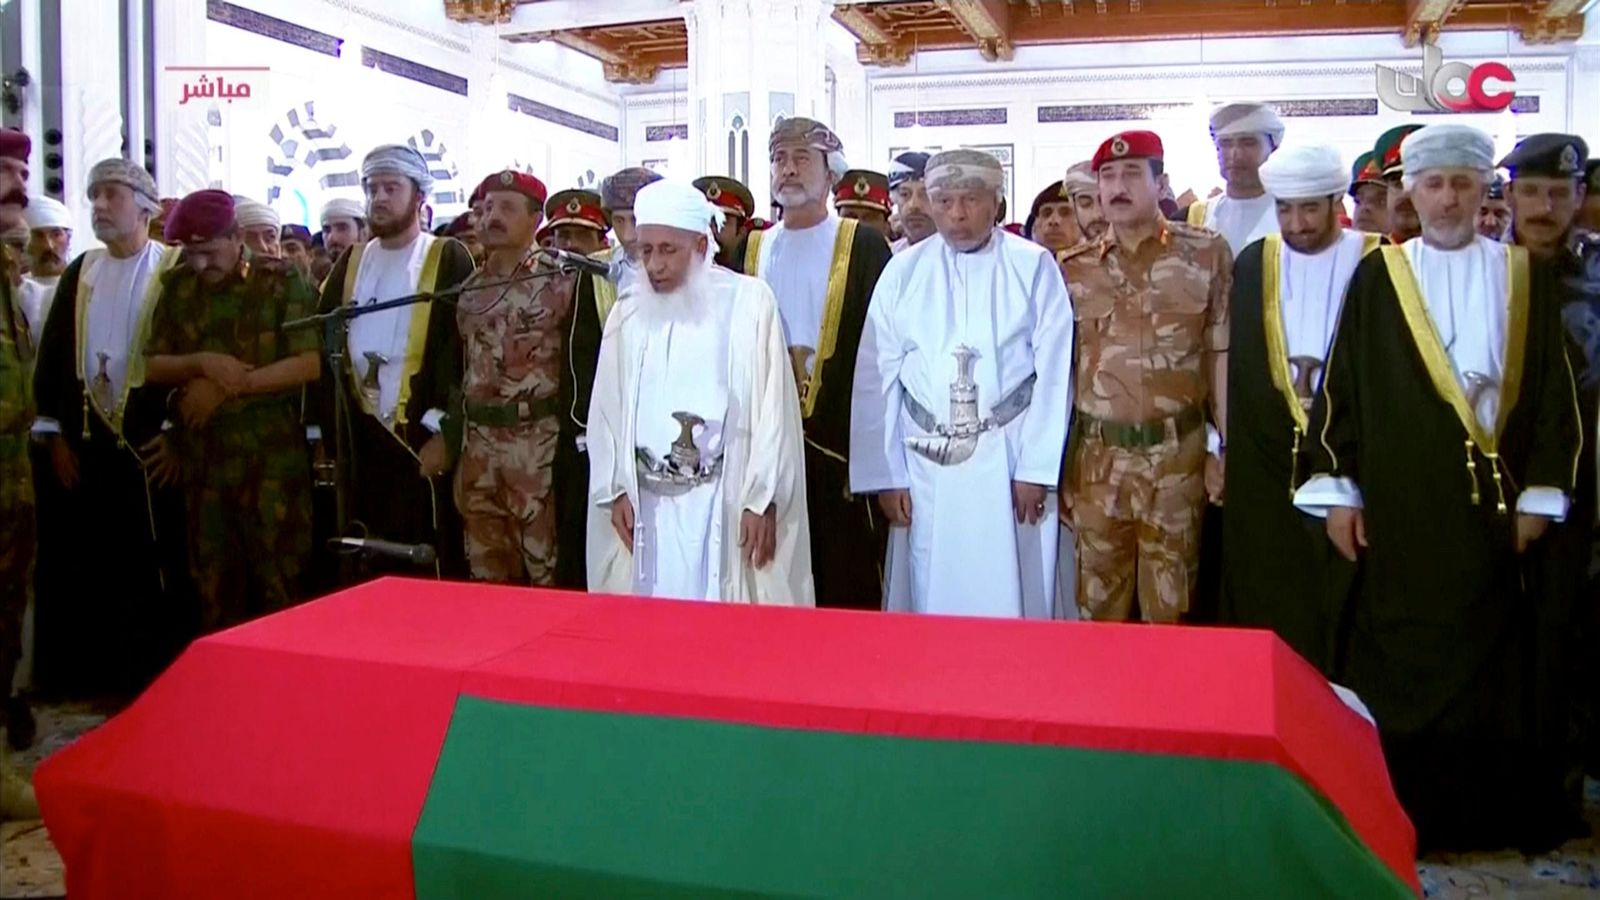 This image made from video shows Oman's new sultan Haitham bin Tariq Al Said, center between two men with daggers, attends the prayer ceremony over Sultan Qaboos coffin at Sultan Qaboos Grand Mosque in Muscat, Oman, Saturday, Jan. 11, 2020. Sultan Qaboos bin Said, the Mideast's longest-ruling monarch who seized power in a 1970 palace coup and pulled his Arabian sultanate into modernity while carefully balancing diplomatic ties between adversaries Iran and the U.S., has died. He was 79. (Oman TV via AP)